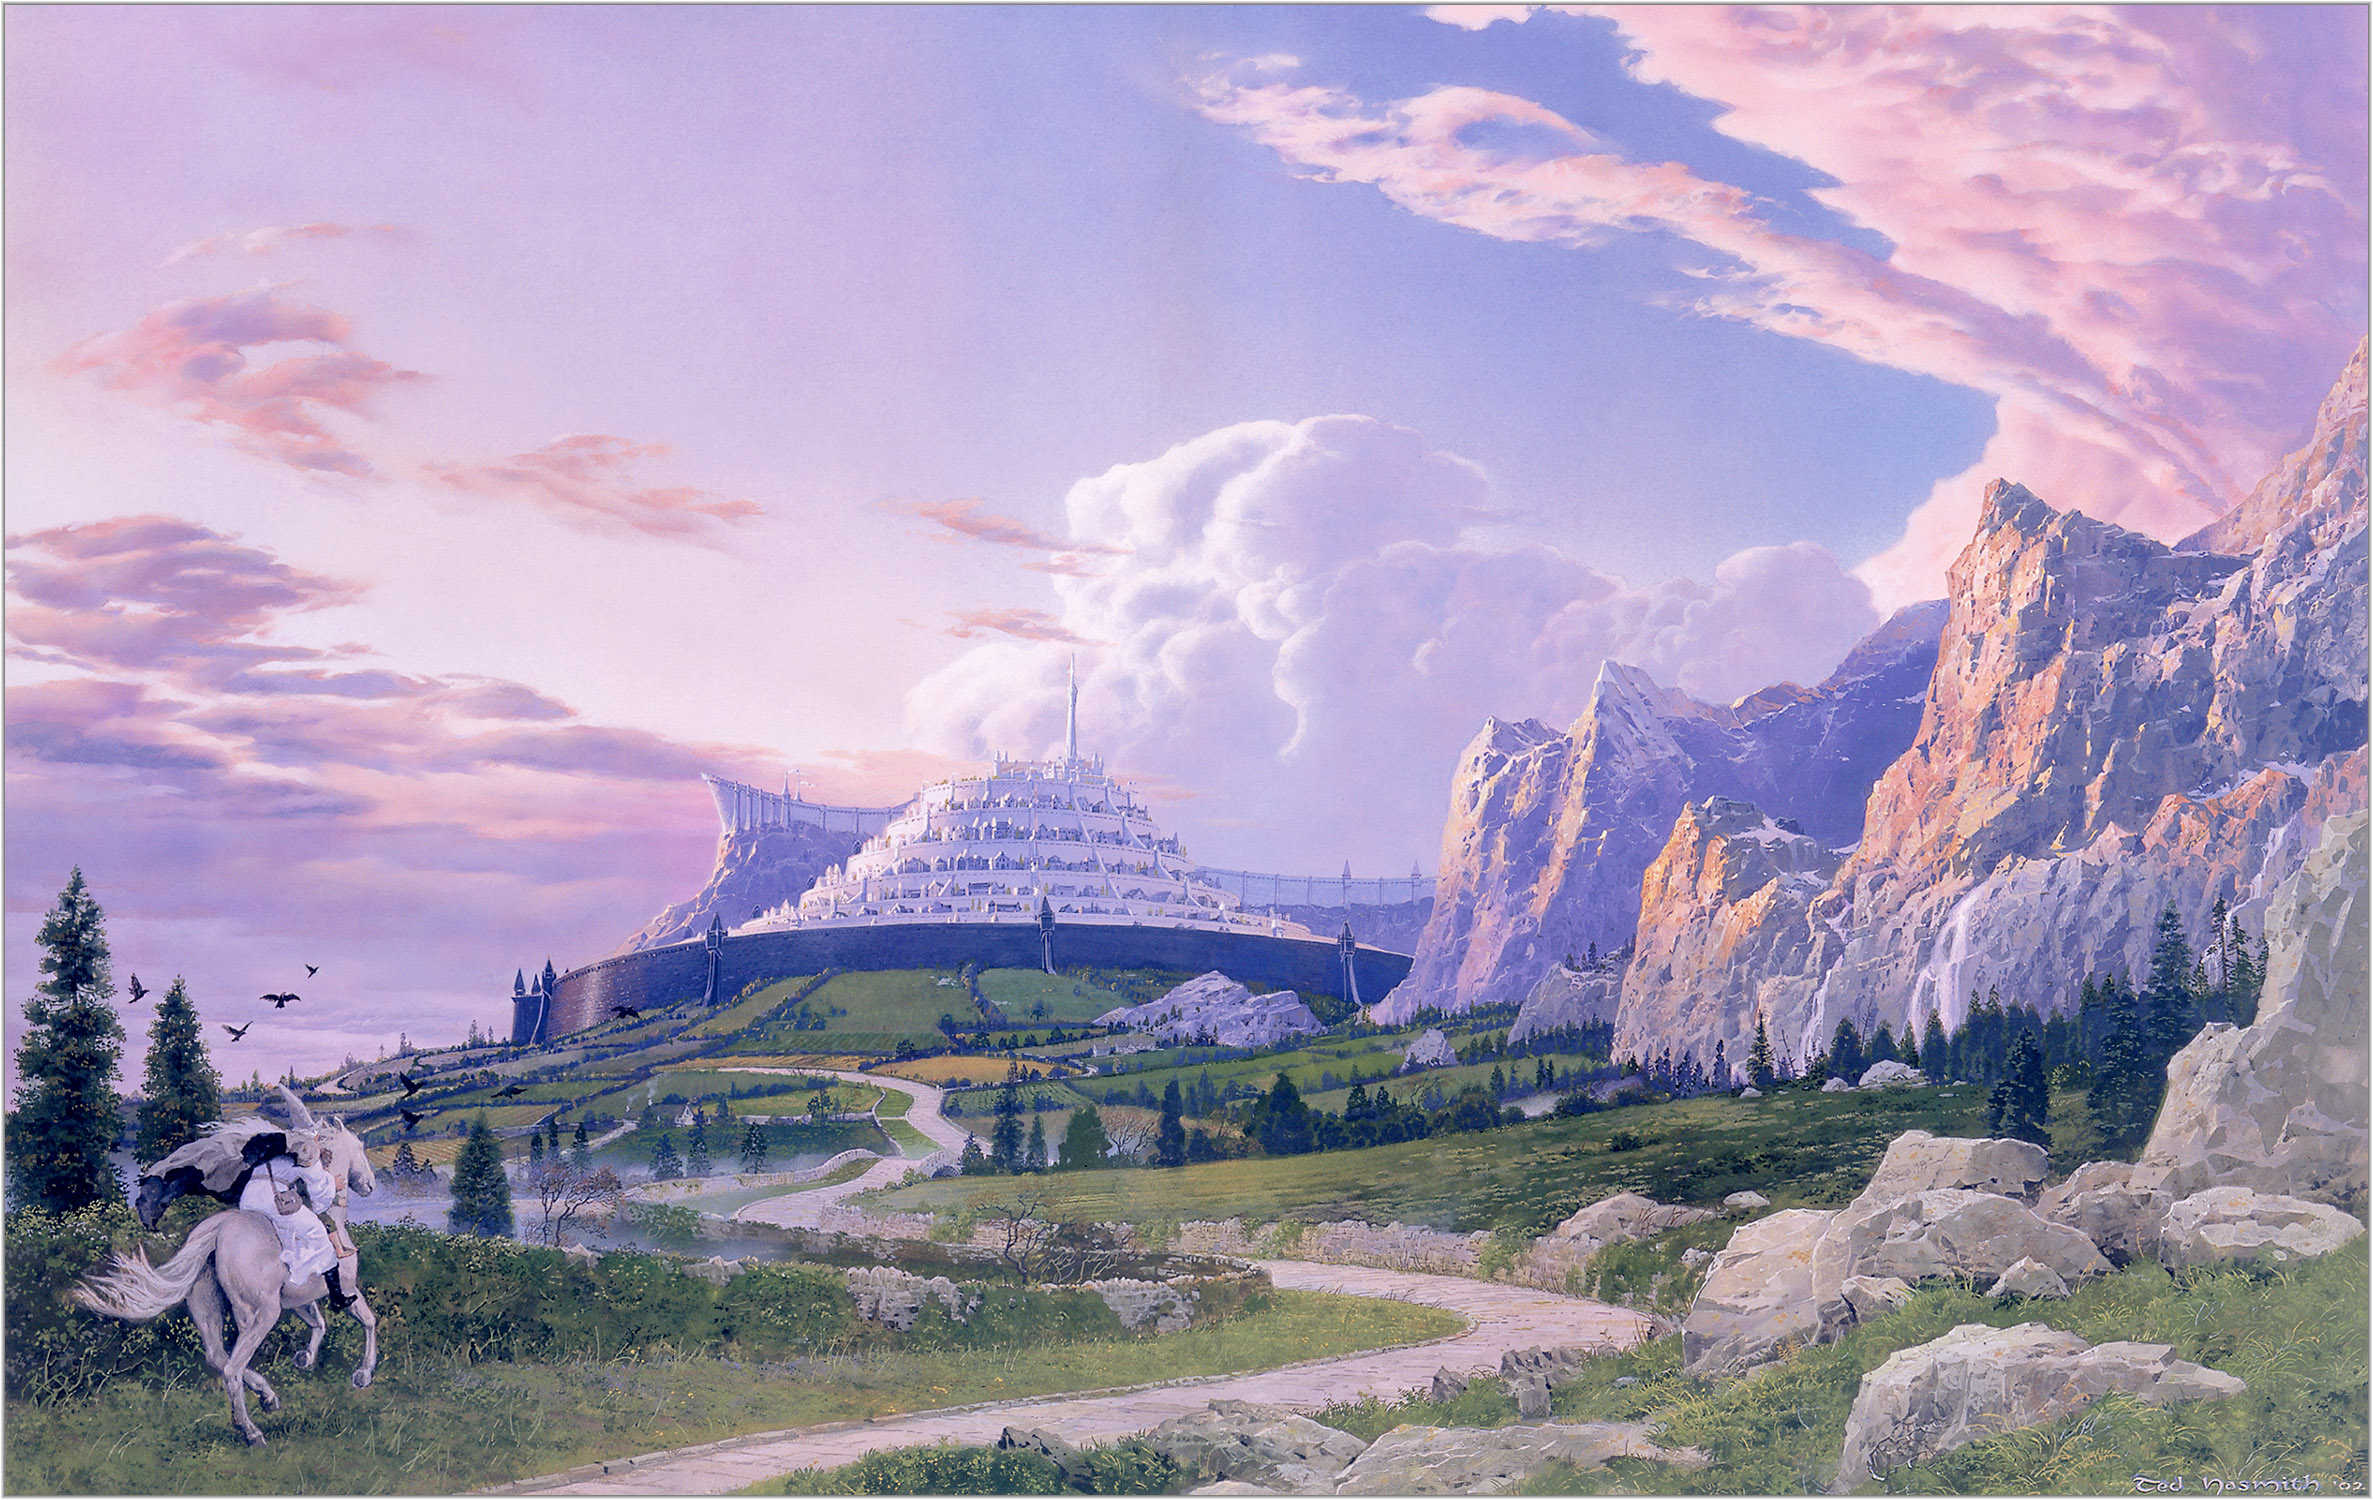 What Direction Did Gandalf And Pippin Approach Minas Tirith From